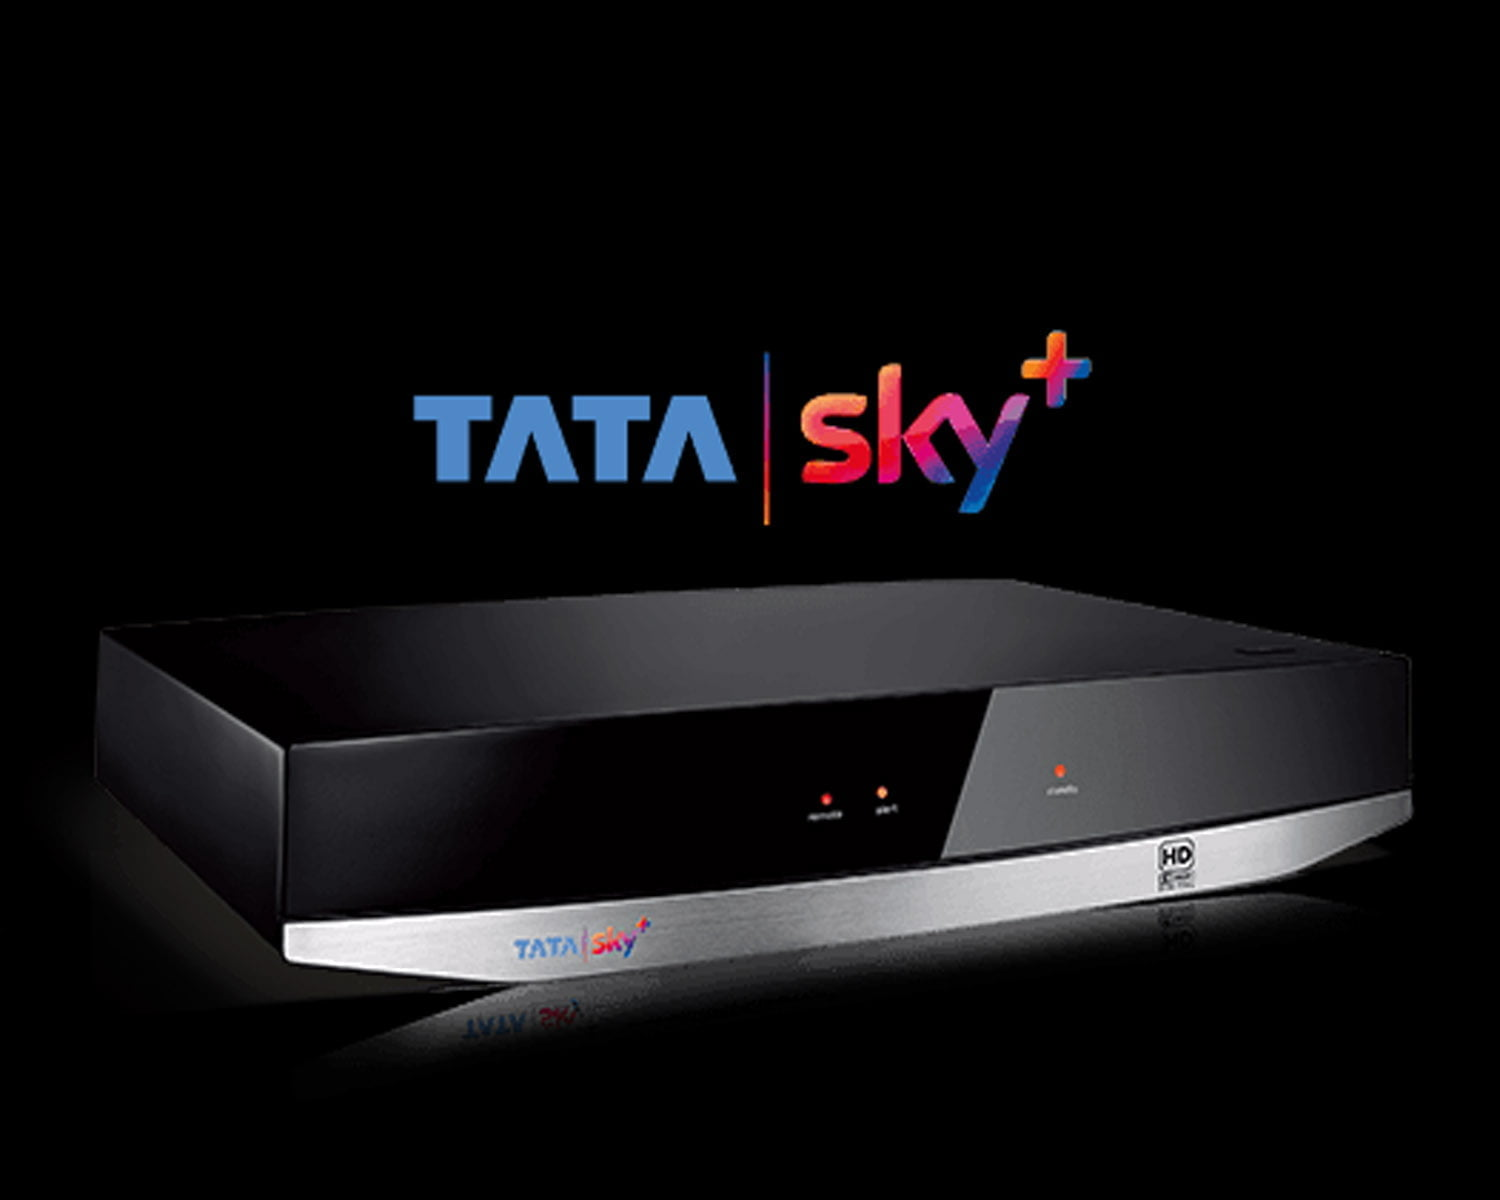 Tata Sky rolls out update for Transfer HD box